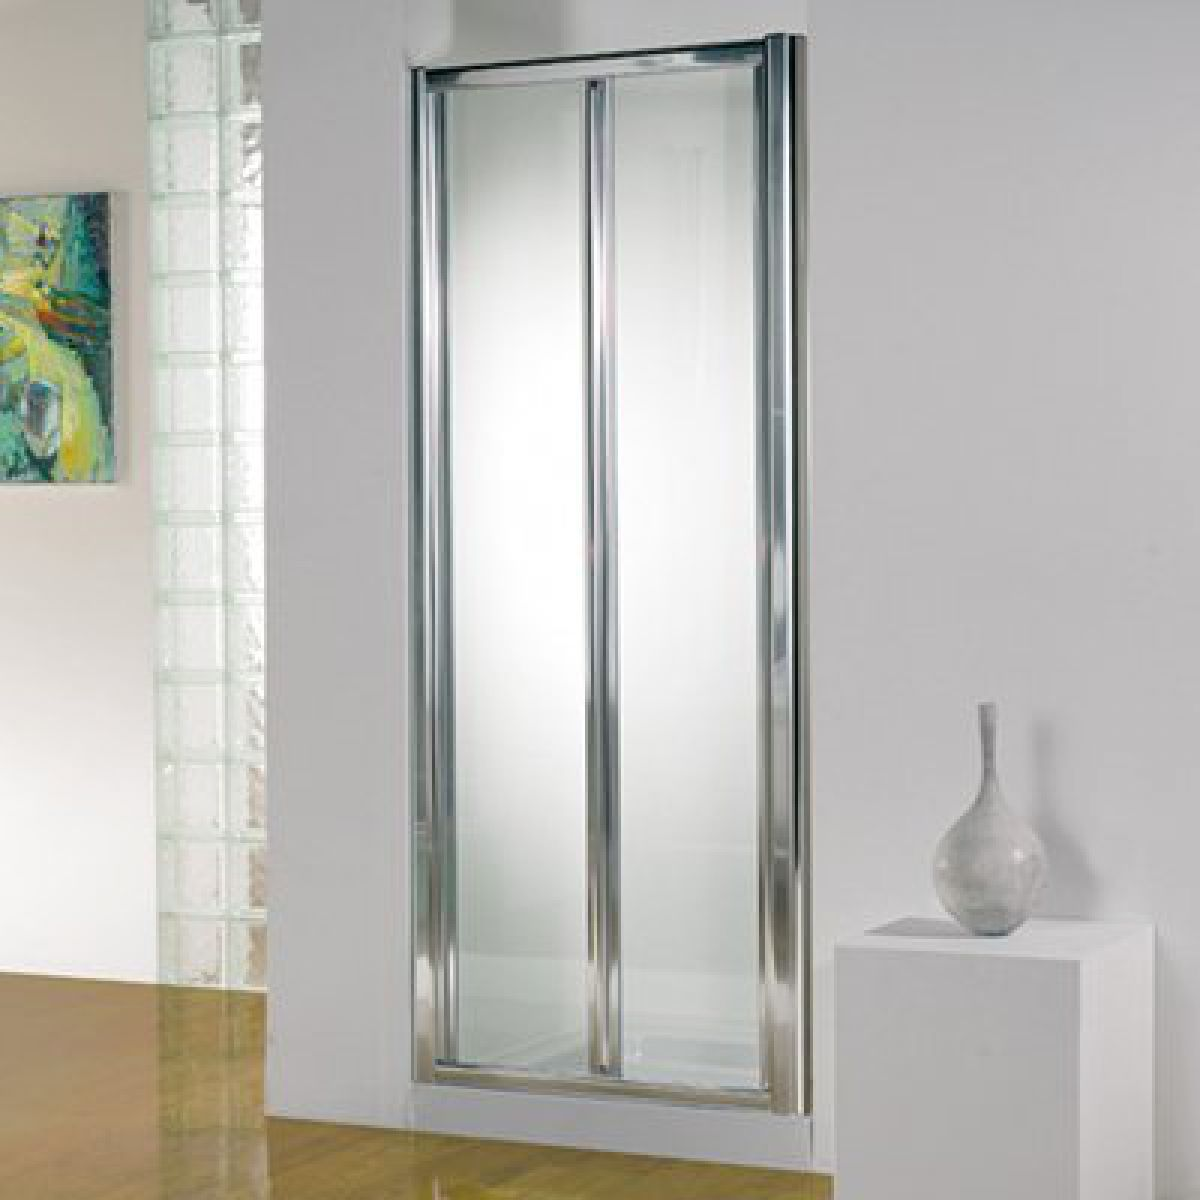 Groovy Kudos Original Bi Fold Shower Door Home Interior And Landscaping Ologienasavecom